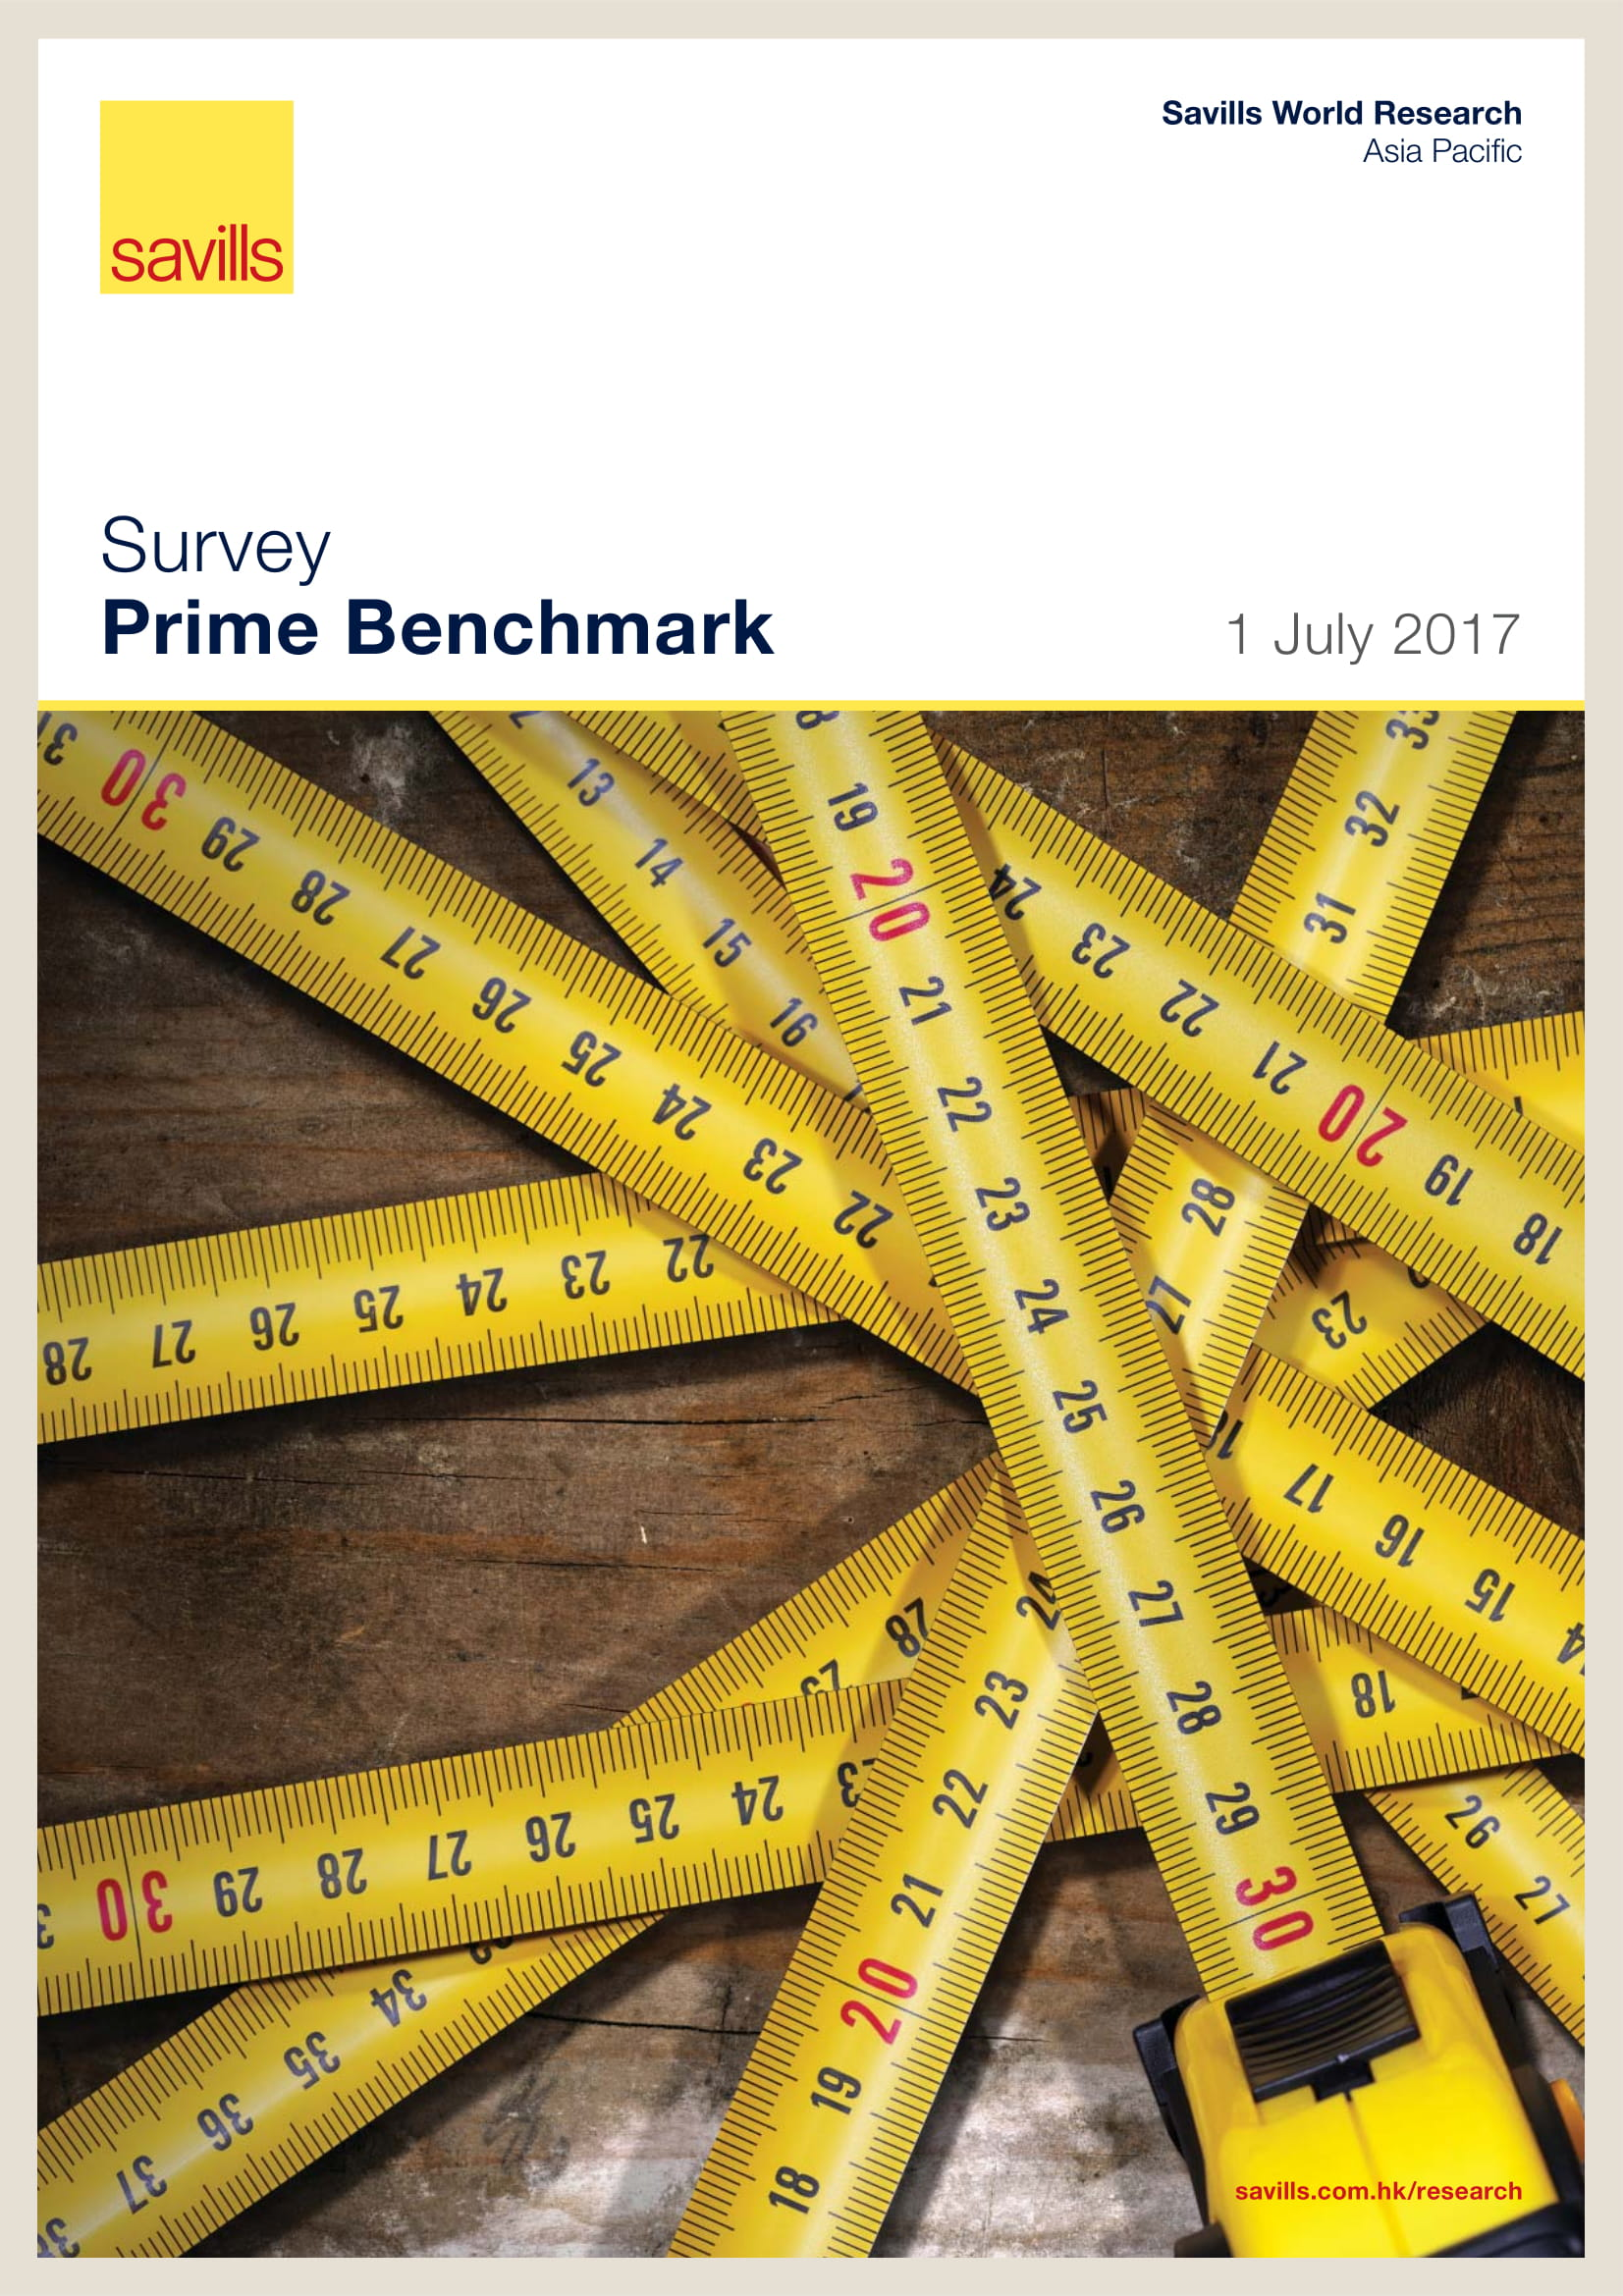 Survey Prime Benchmark 1 July 2017